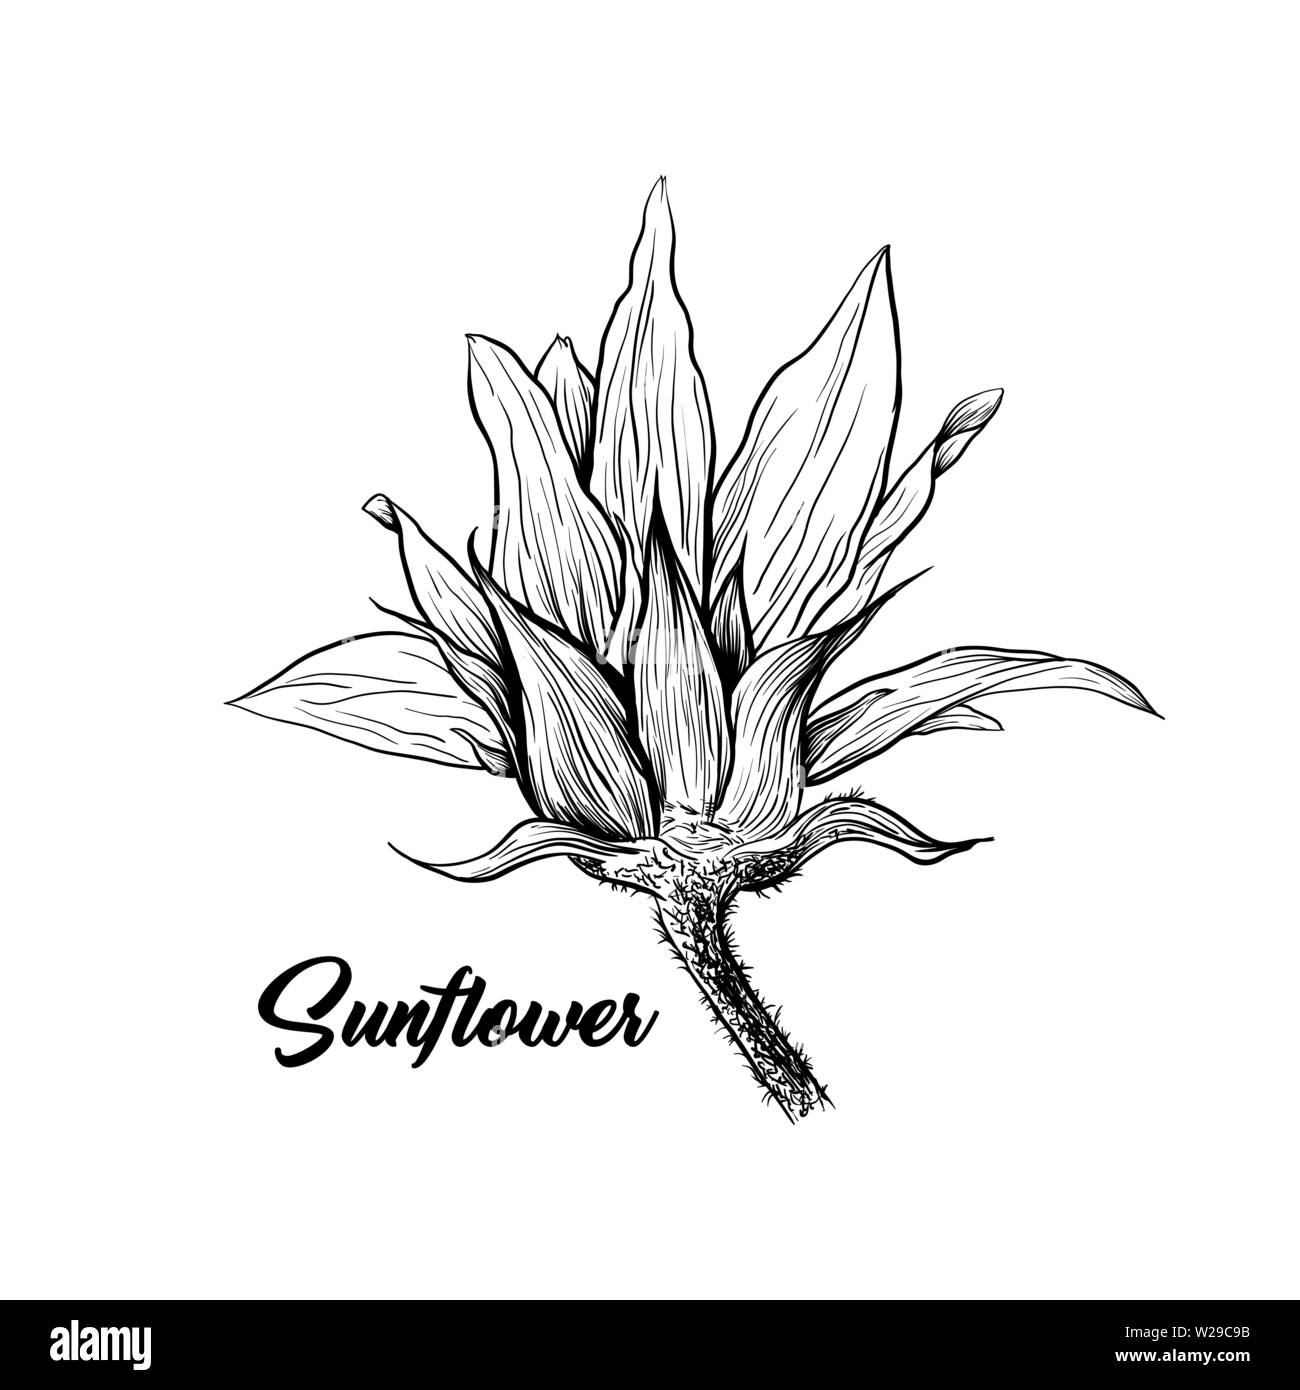 Sunflower hand drawn vector illustration floral ink pen